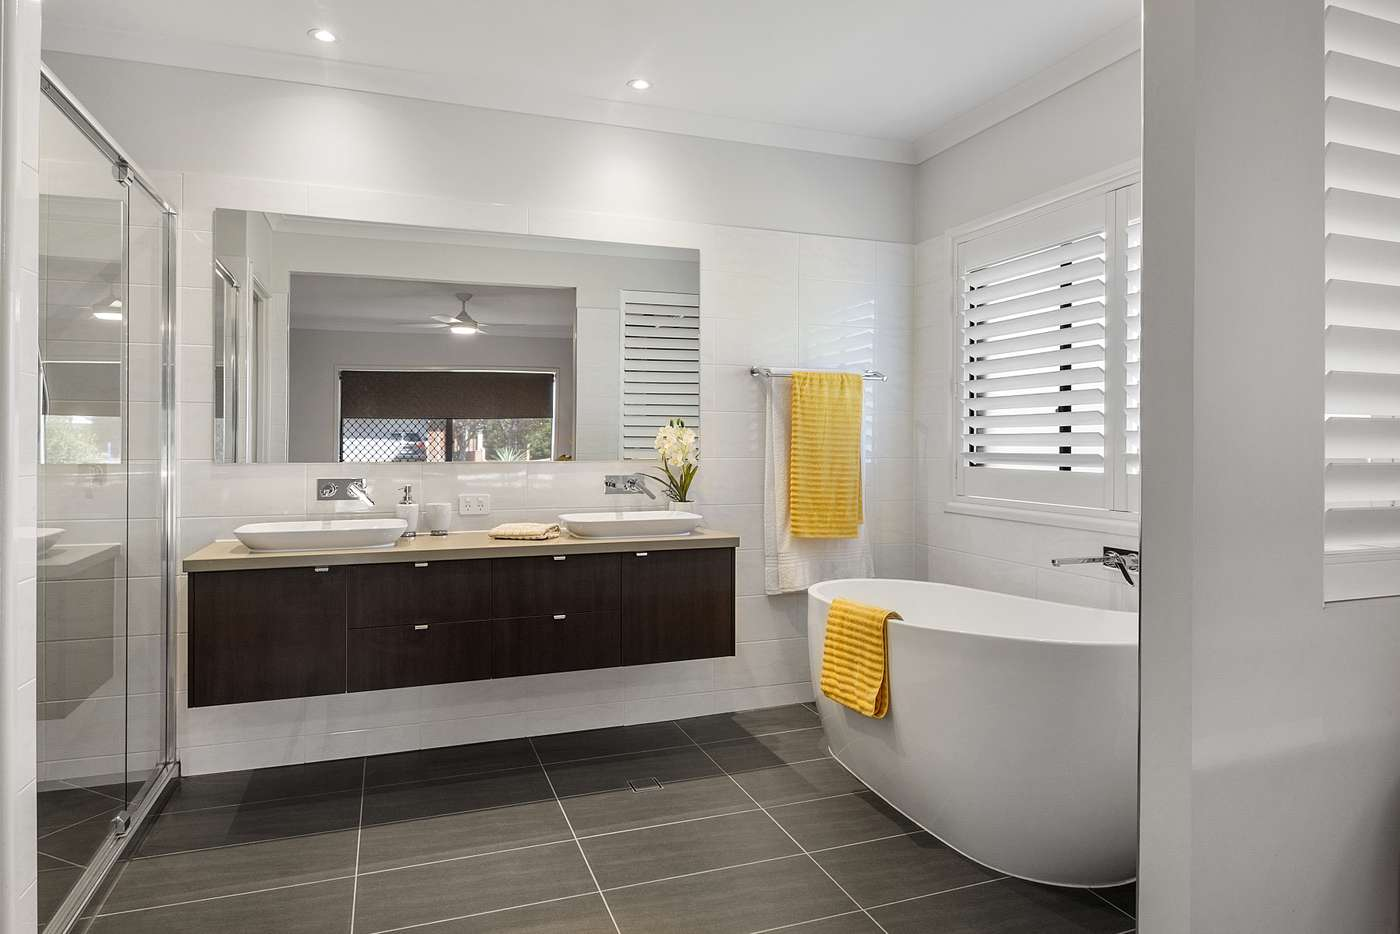 Seventh view of Homely house listing, 2 Dunbar Court, Highfields QLD 4352